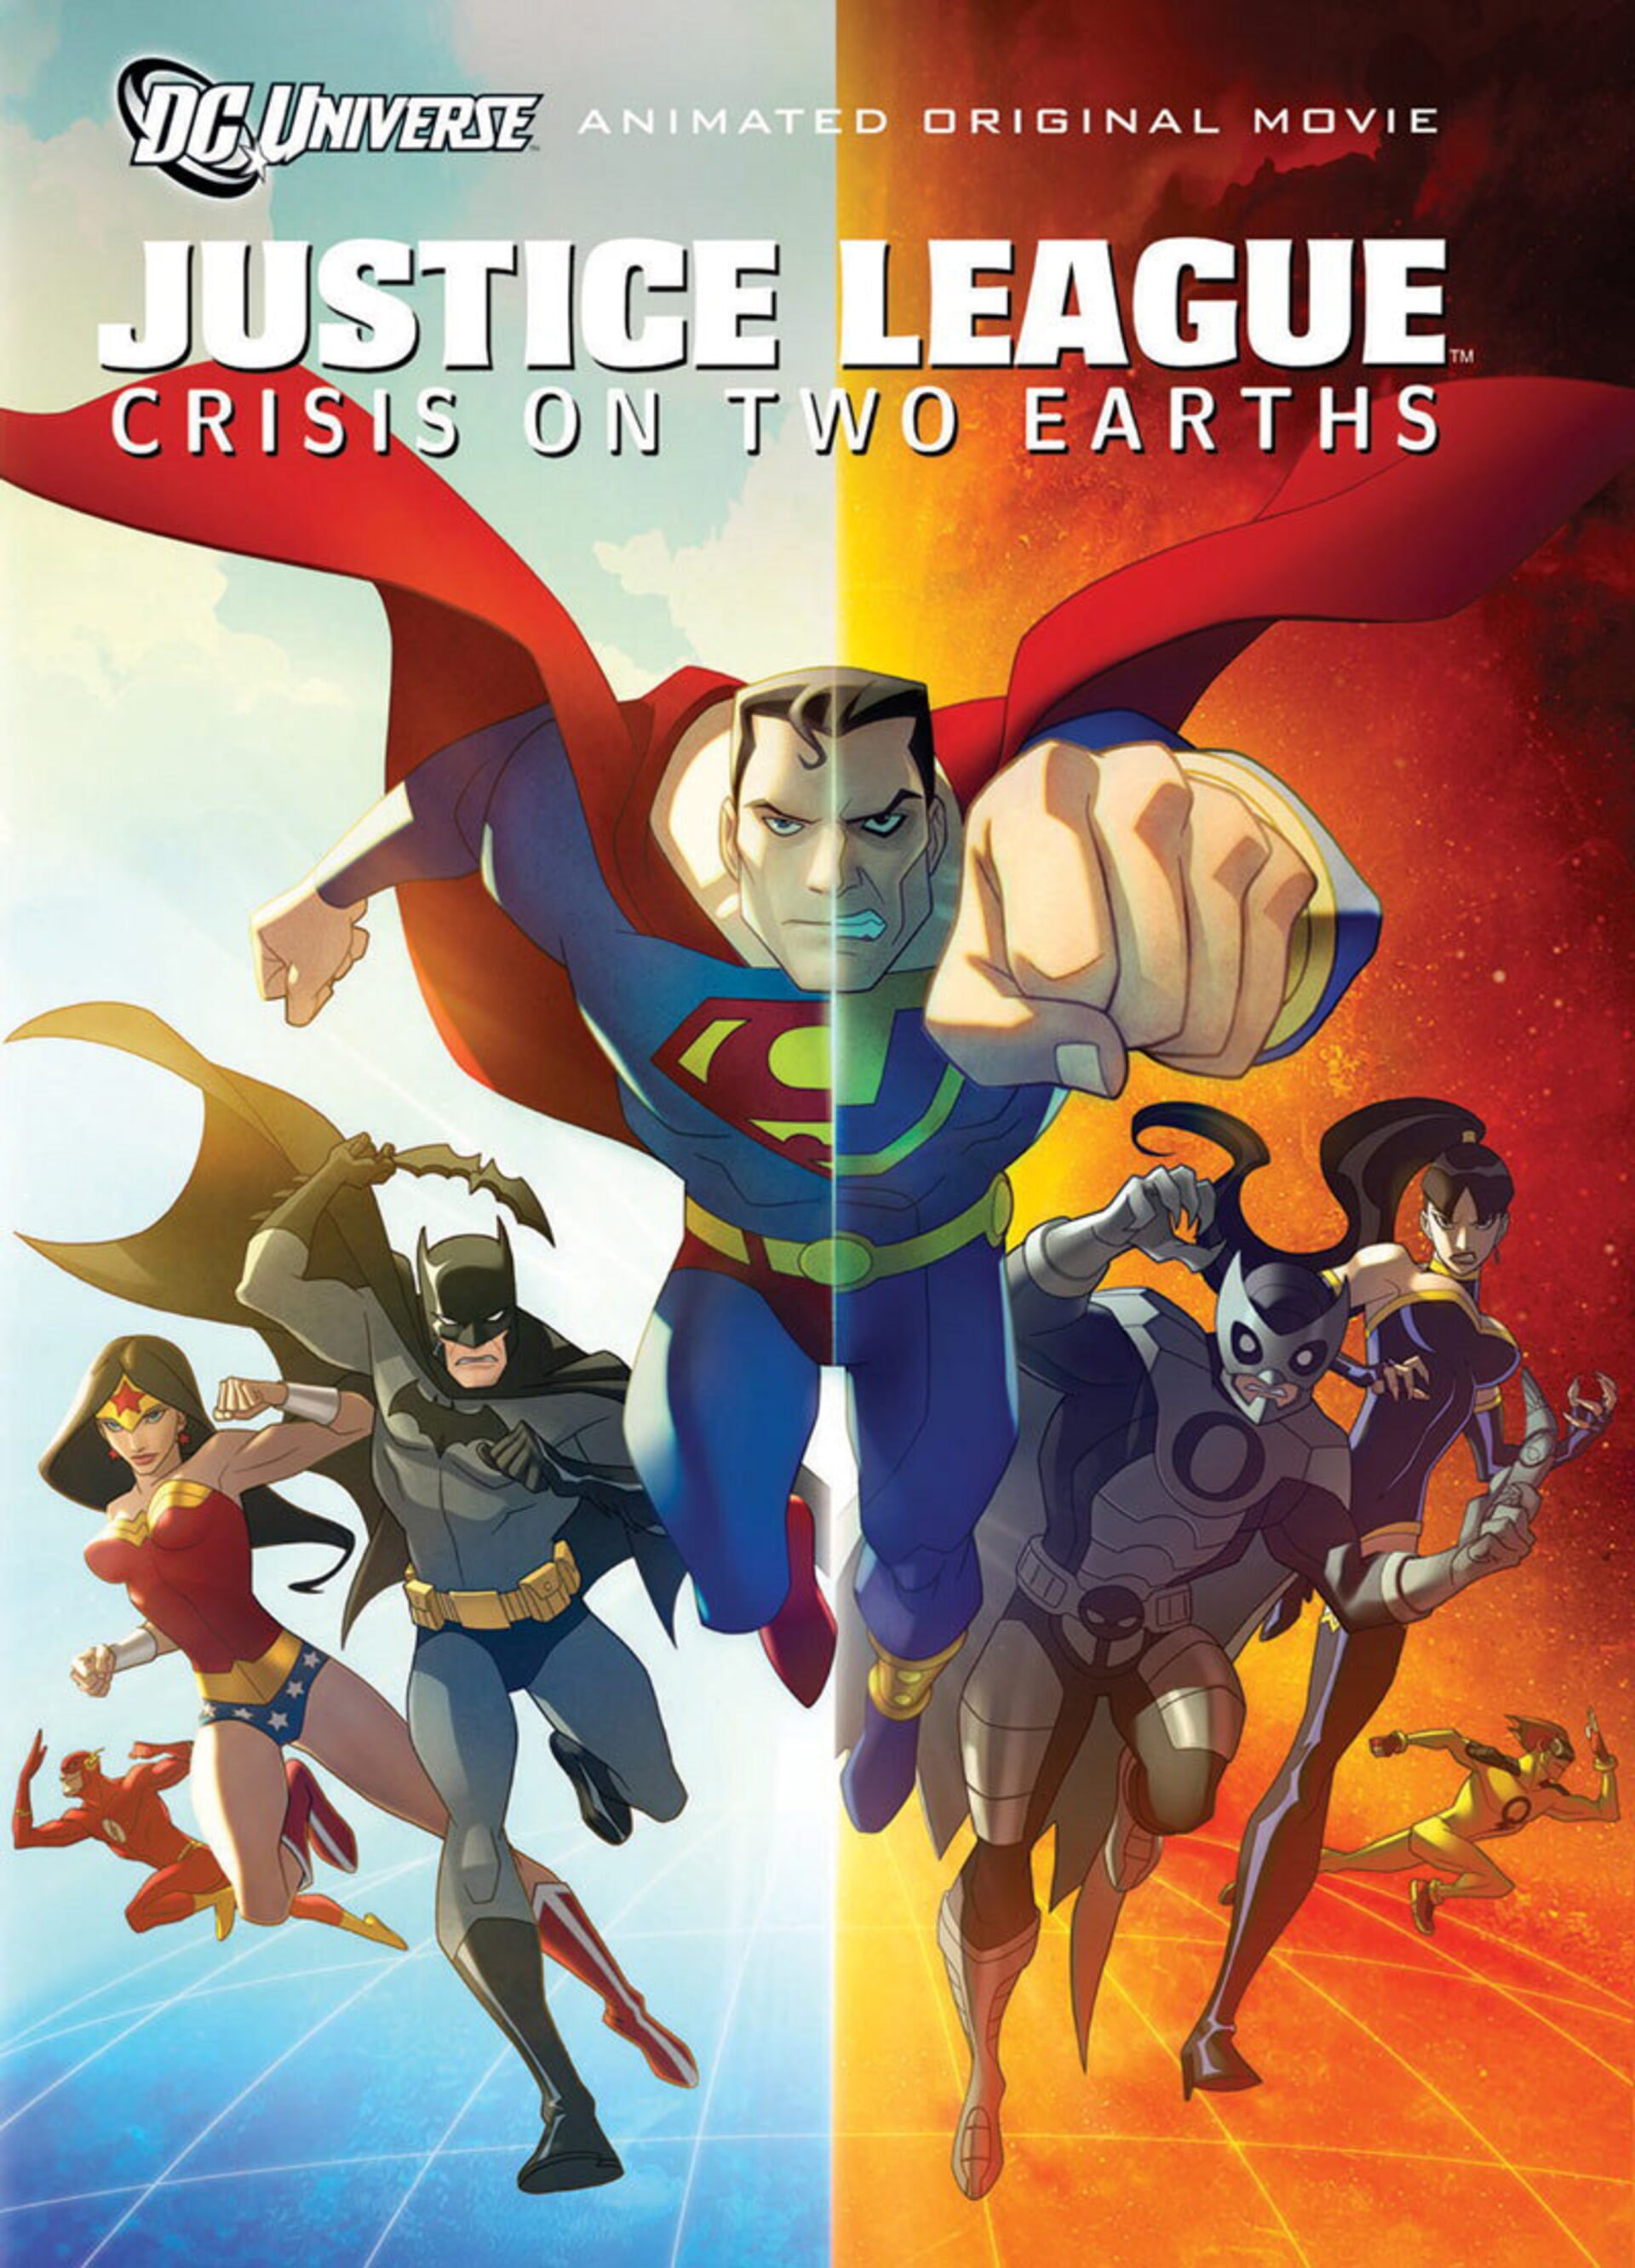 WarnerBros com | Justice League: Crisis on Two Earths | Movies